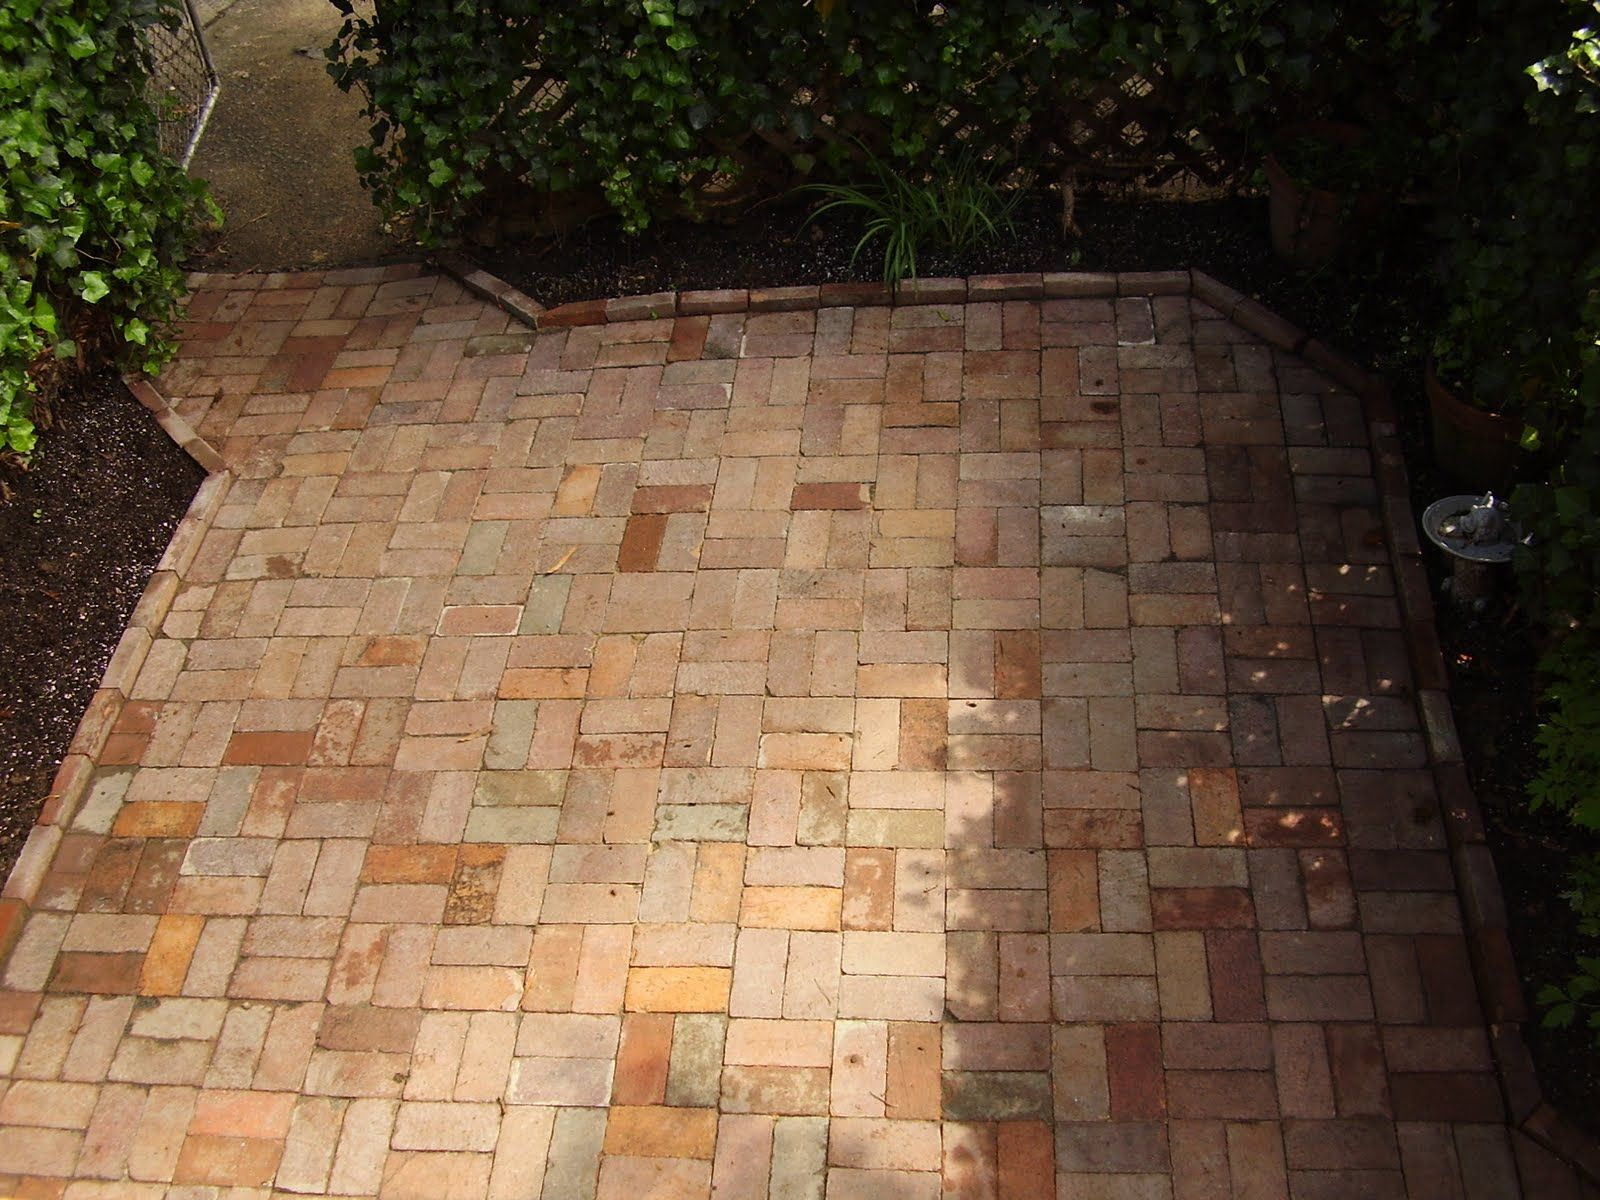 Basketweave Brick Pattern (Dry Laid) W Raised Border